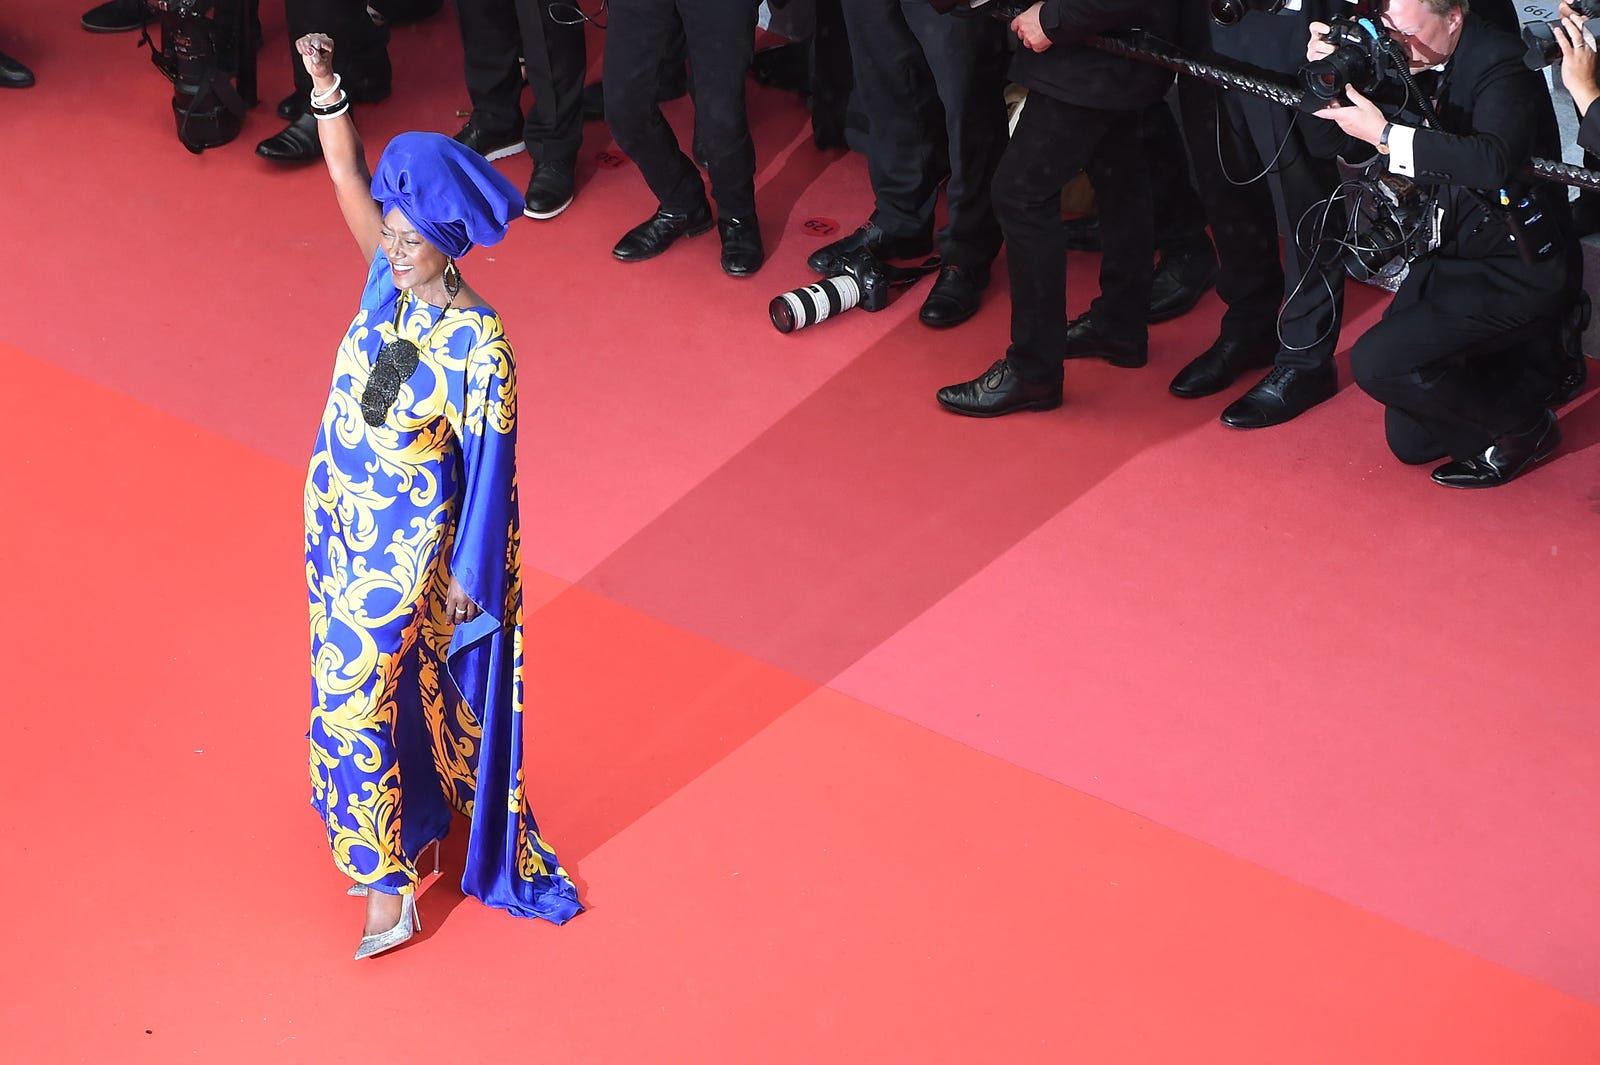 Jury member Khadja Nin attends the screening of Burning during the 71st annual Cannes Film Festival at Palais des Festivals on May 16, 2018, in Cannes, France.